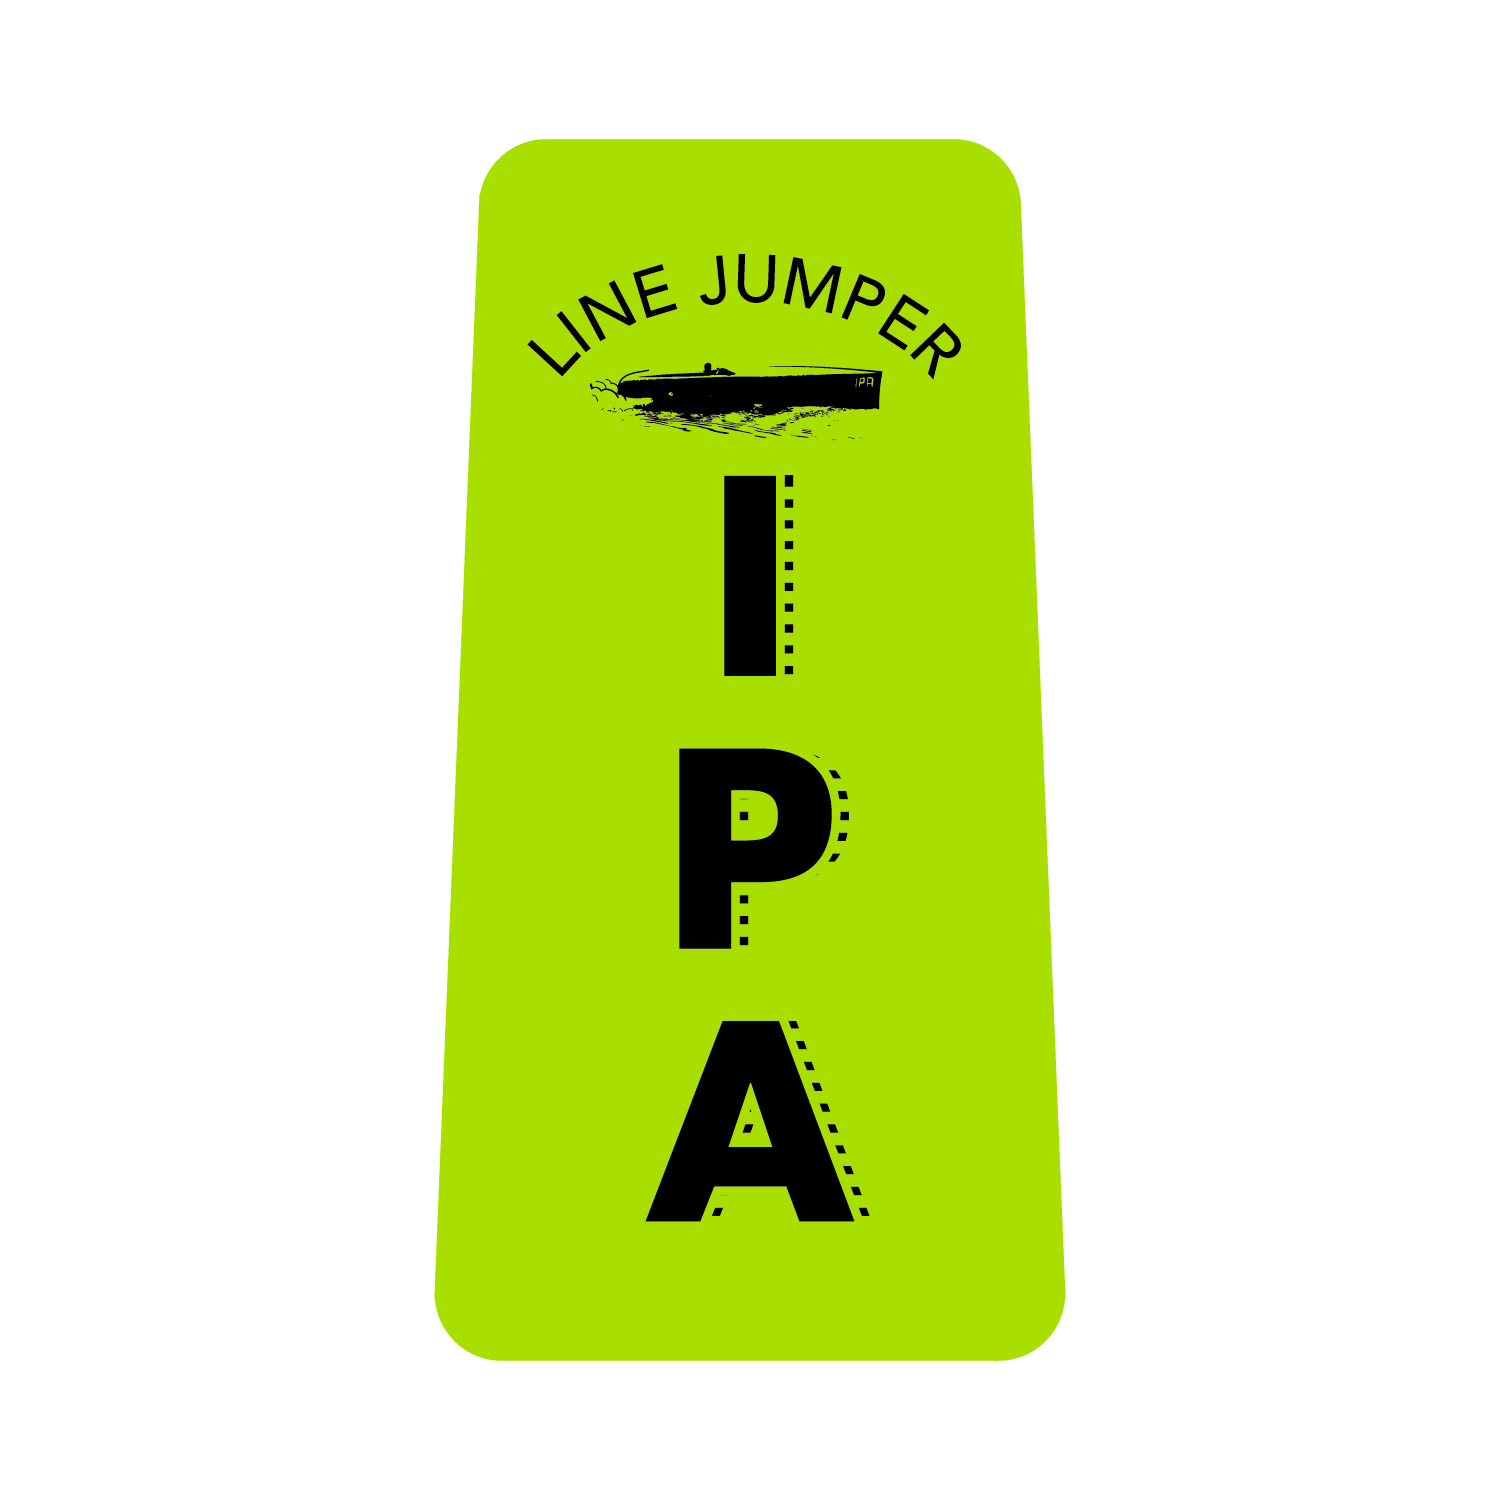 - LINE JUMPER IPA - 5.0% ABV, 56 IBU's; India Pale Ale; Line Jumper gets its name from boats smuggling liquor across the Canadian border into the US during prohibition. Accordingly, this hop forward ale toes the line between styles and swiftly smuggles citrus and fruity notes across your palate into IPA territory when the time is right. Columbus, Eureka! and Mosaic hops.